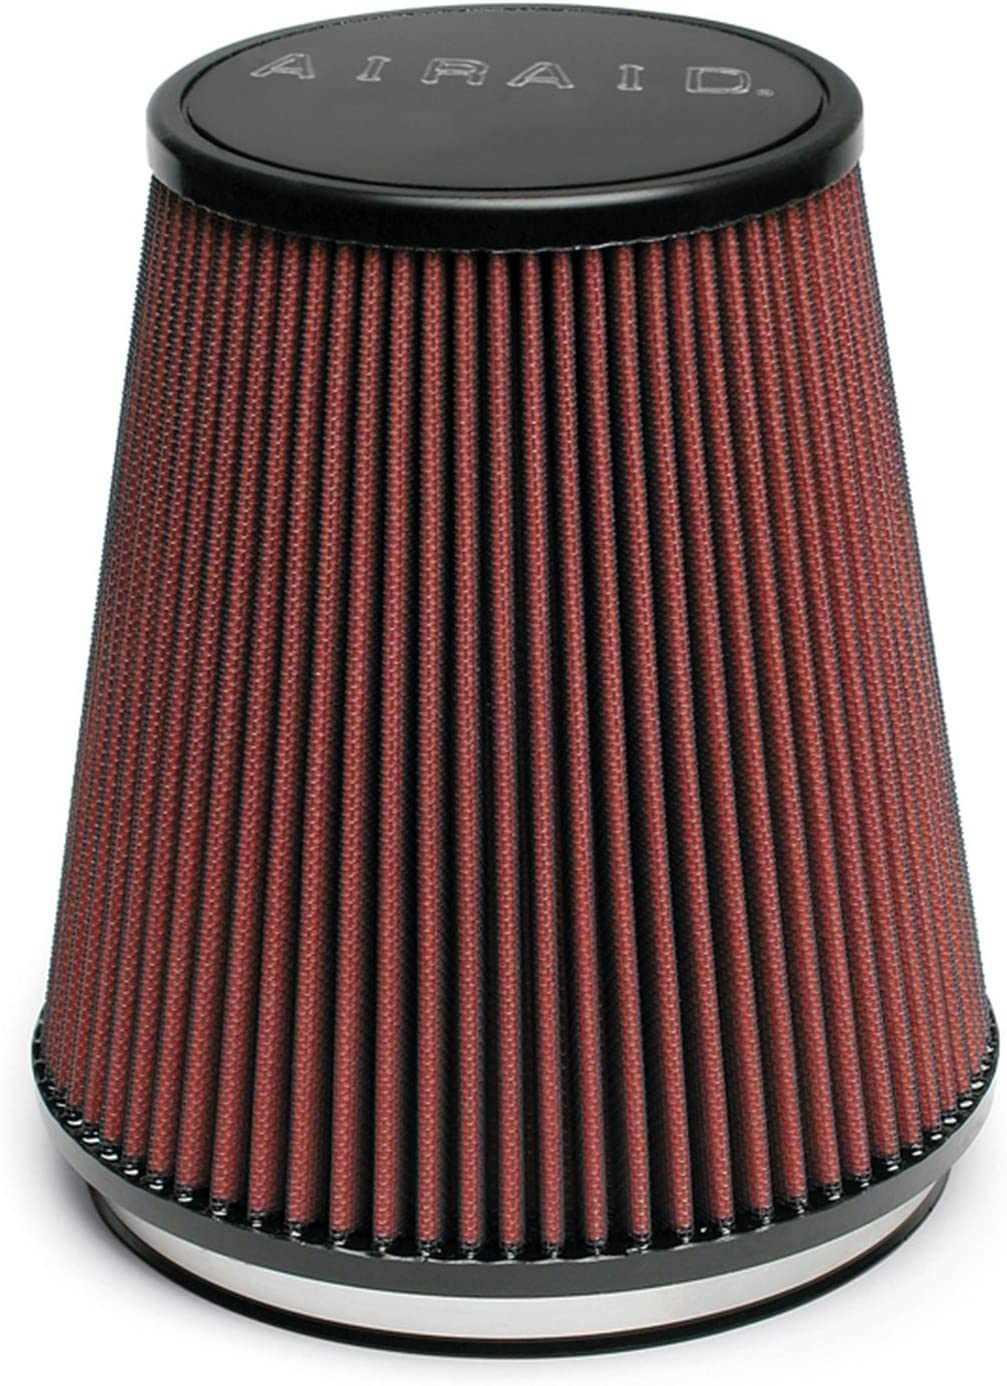 184 mm Top Flange ID; 7 in Base; 5 in Height; 7.25 in 152 mm 178 mm 127 mm AIRAID 700-462 Universal Clamp-On Air Filter: Round Tapered; 6 in